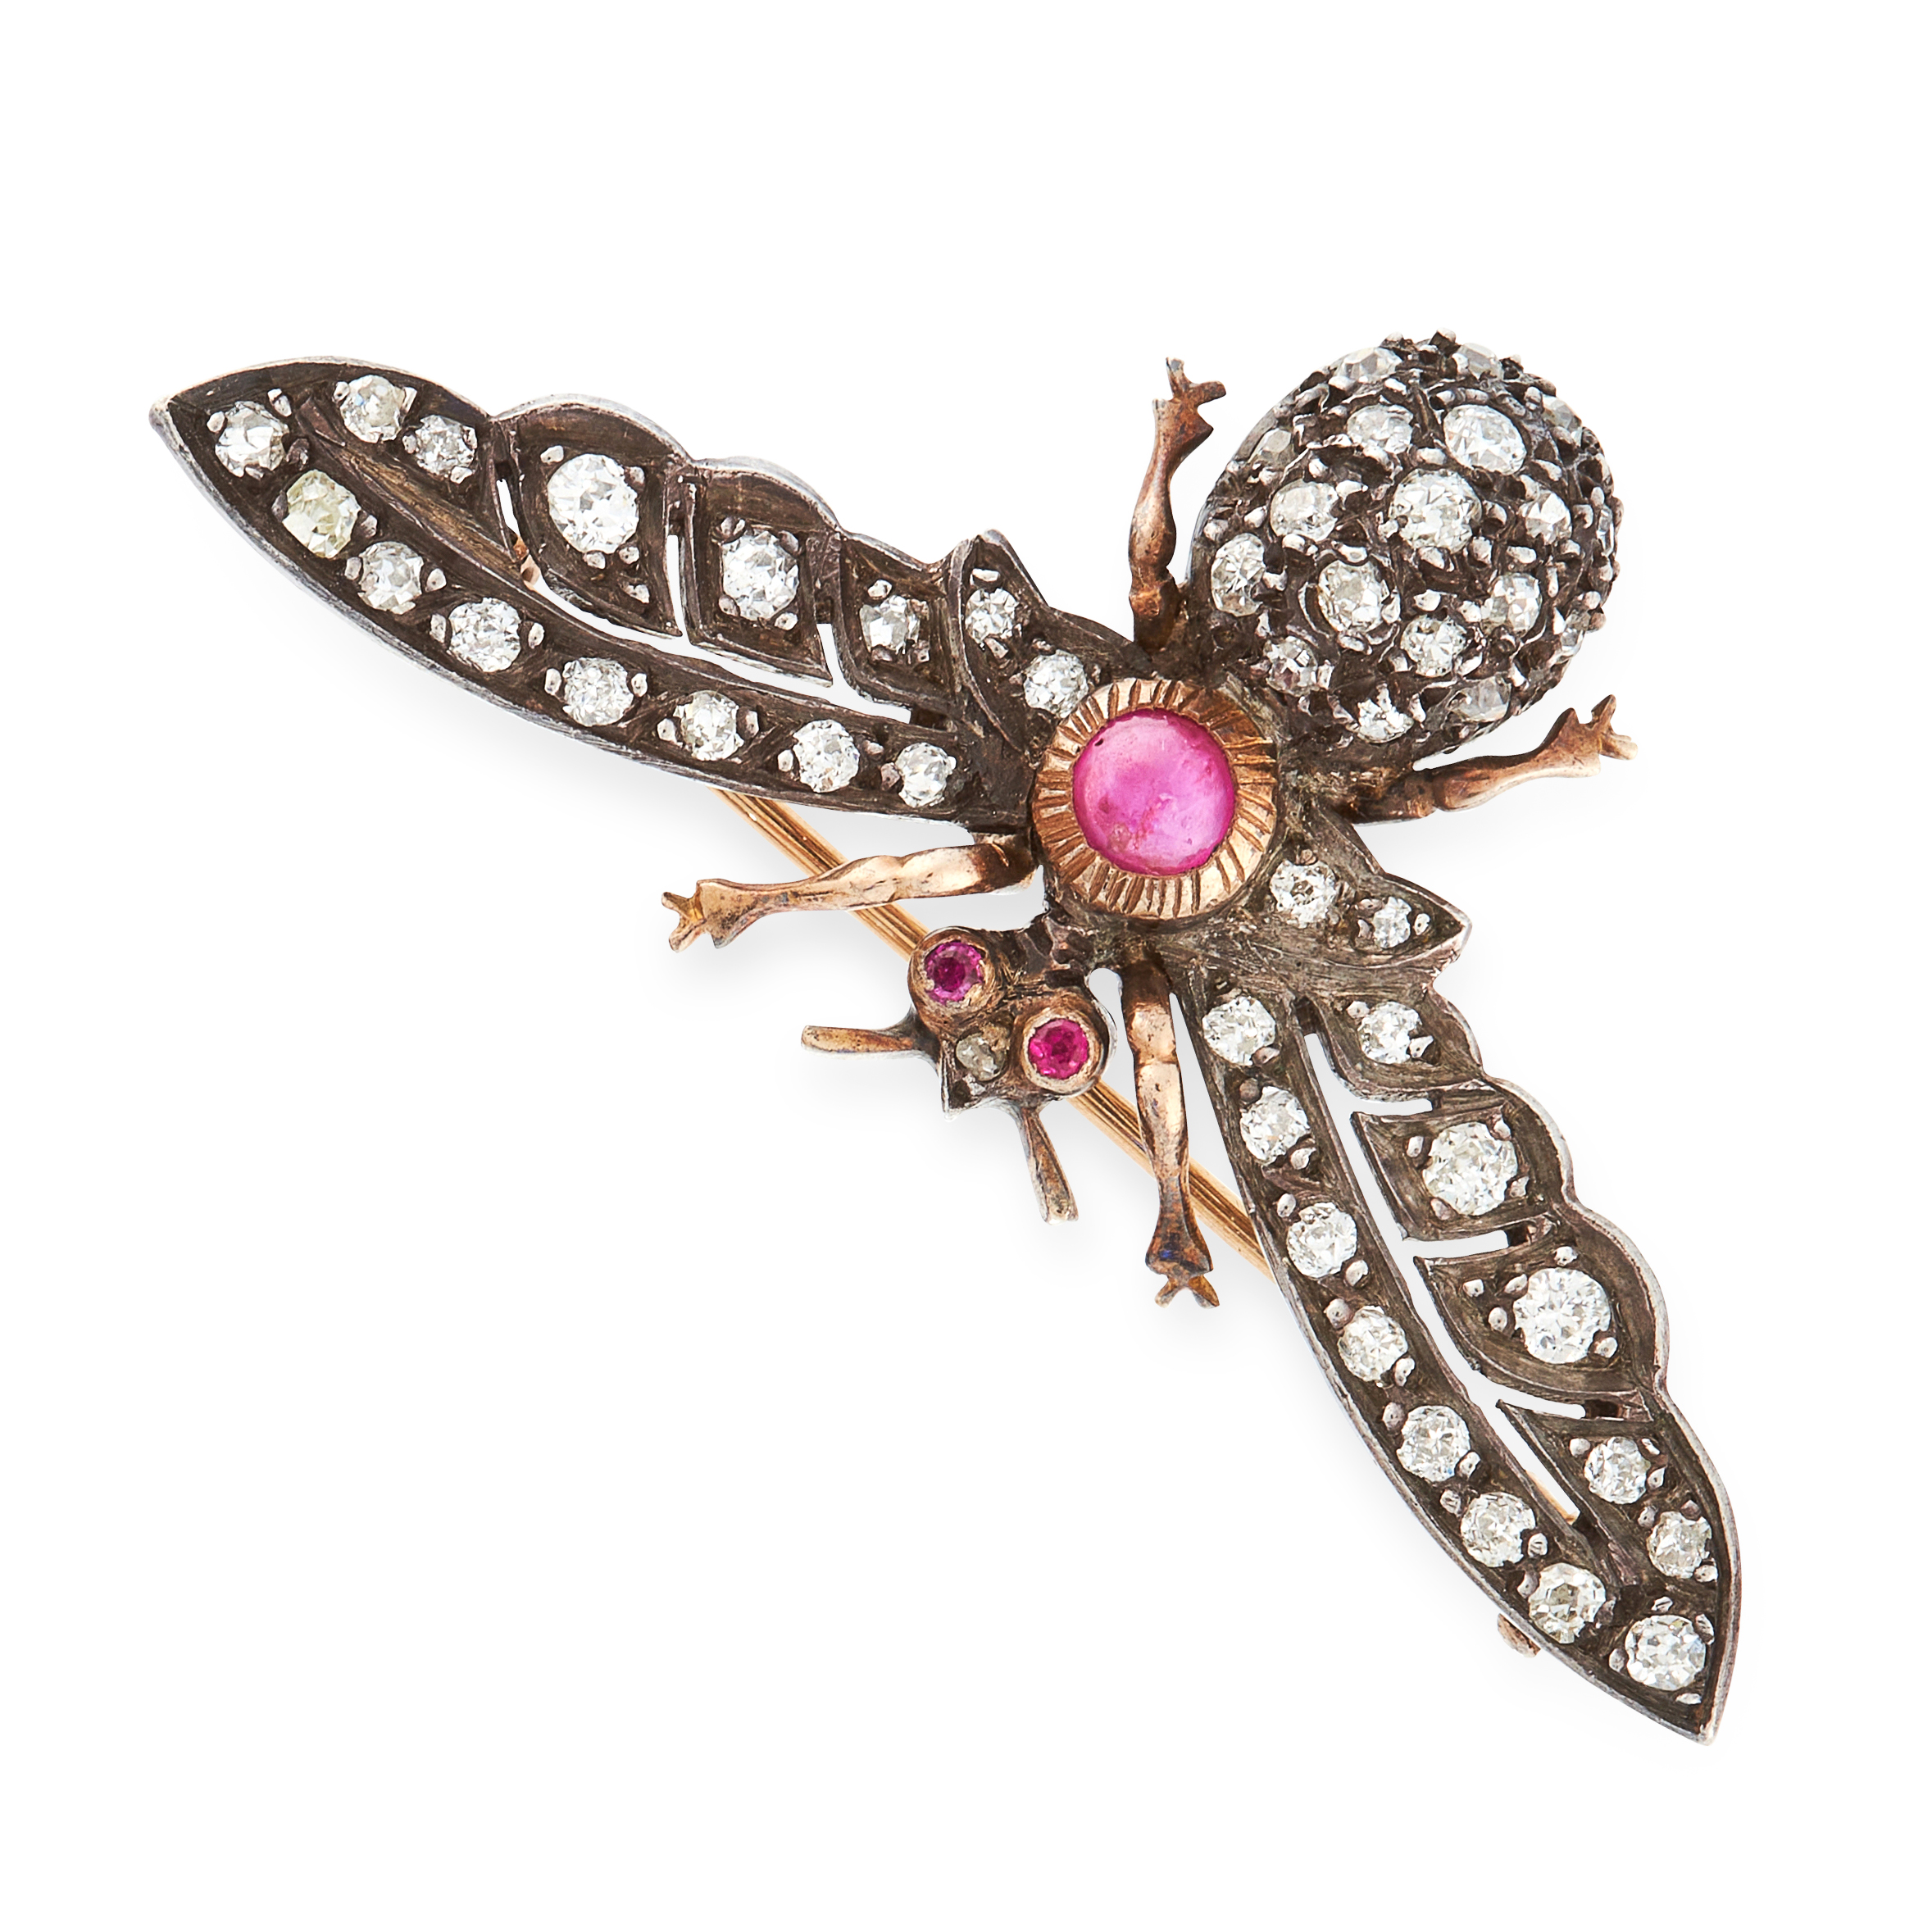 AN ANTIQUE RUBY AND DIAMOND INSECT BROOCH in yellow gold and silver, the body set with a principal